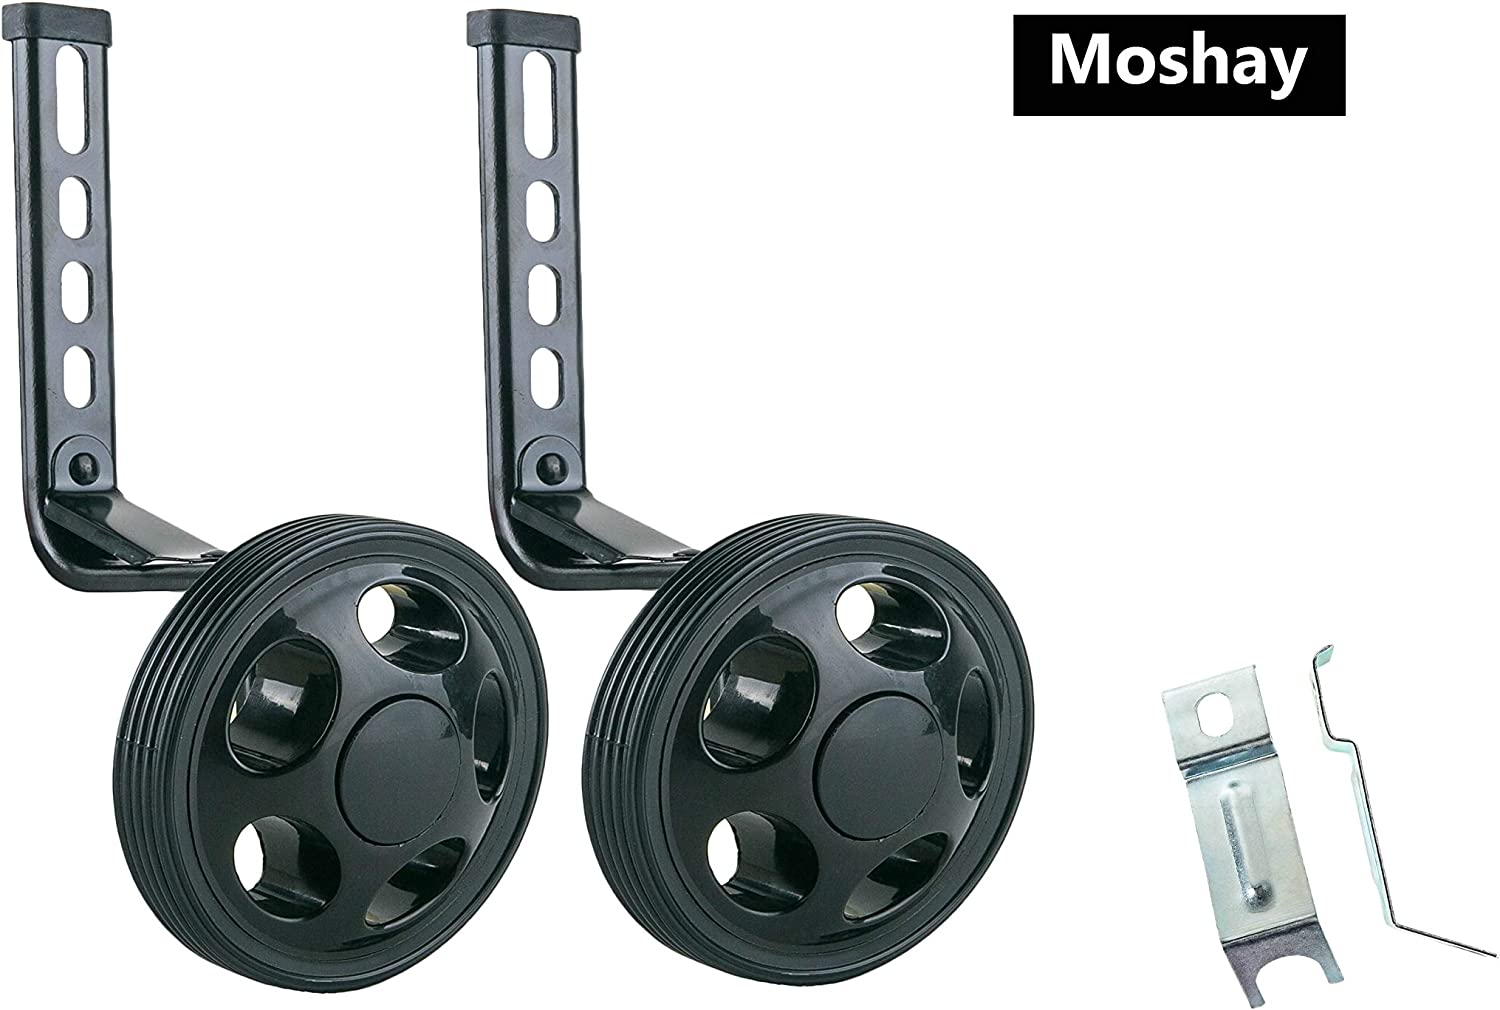 MOSHAY Training Wheels for Bicycle Children's Quantity Oklahoma City Mall limited 14 stabiliser